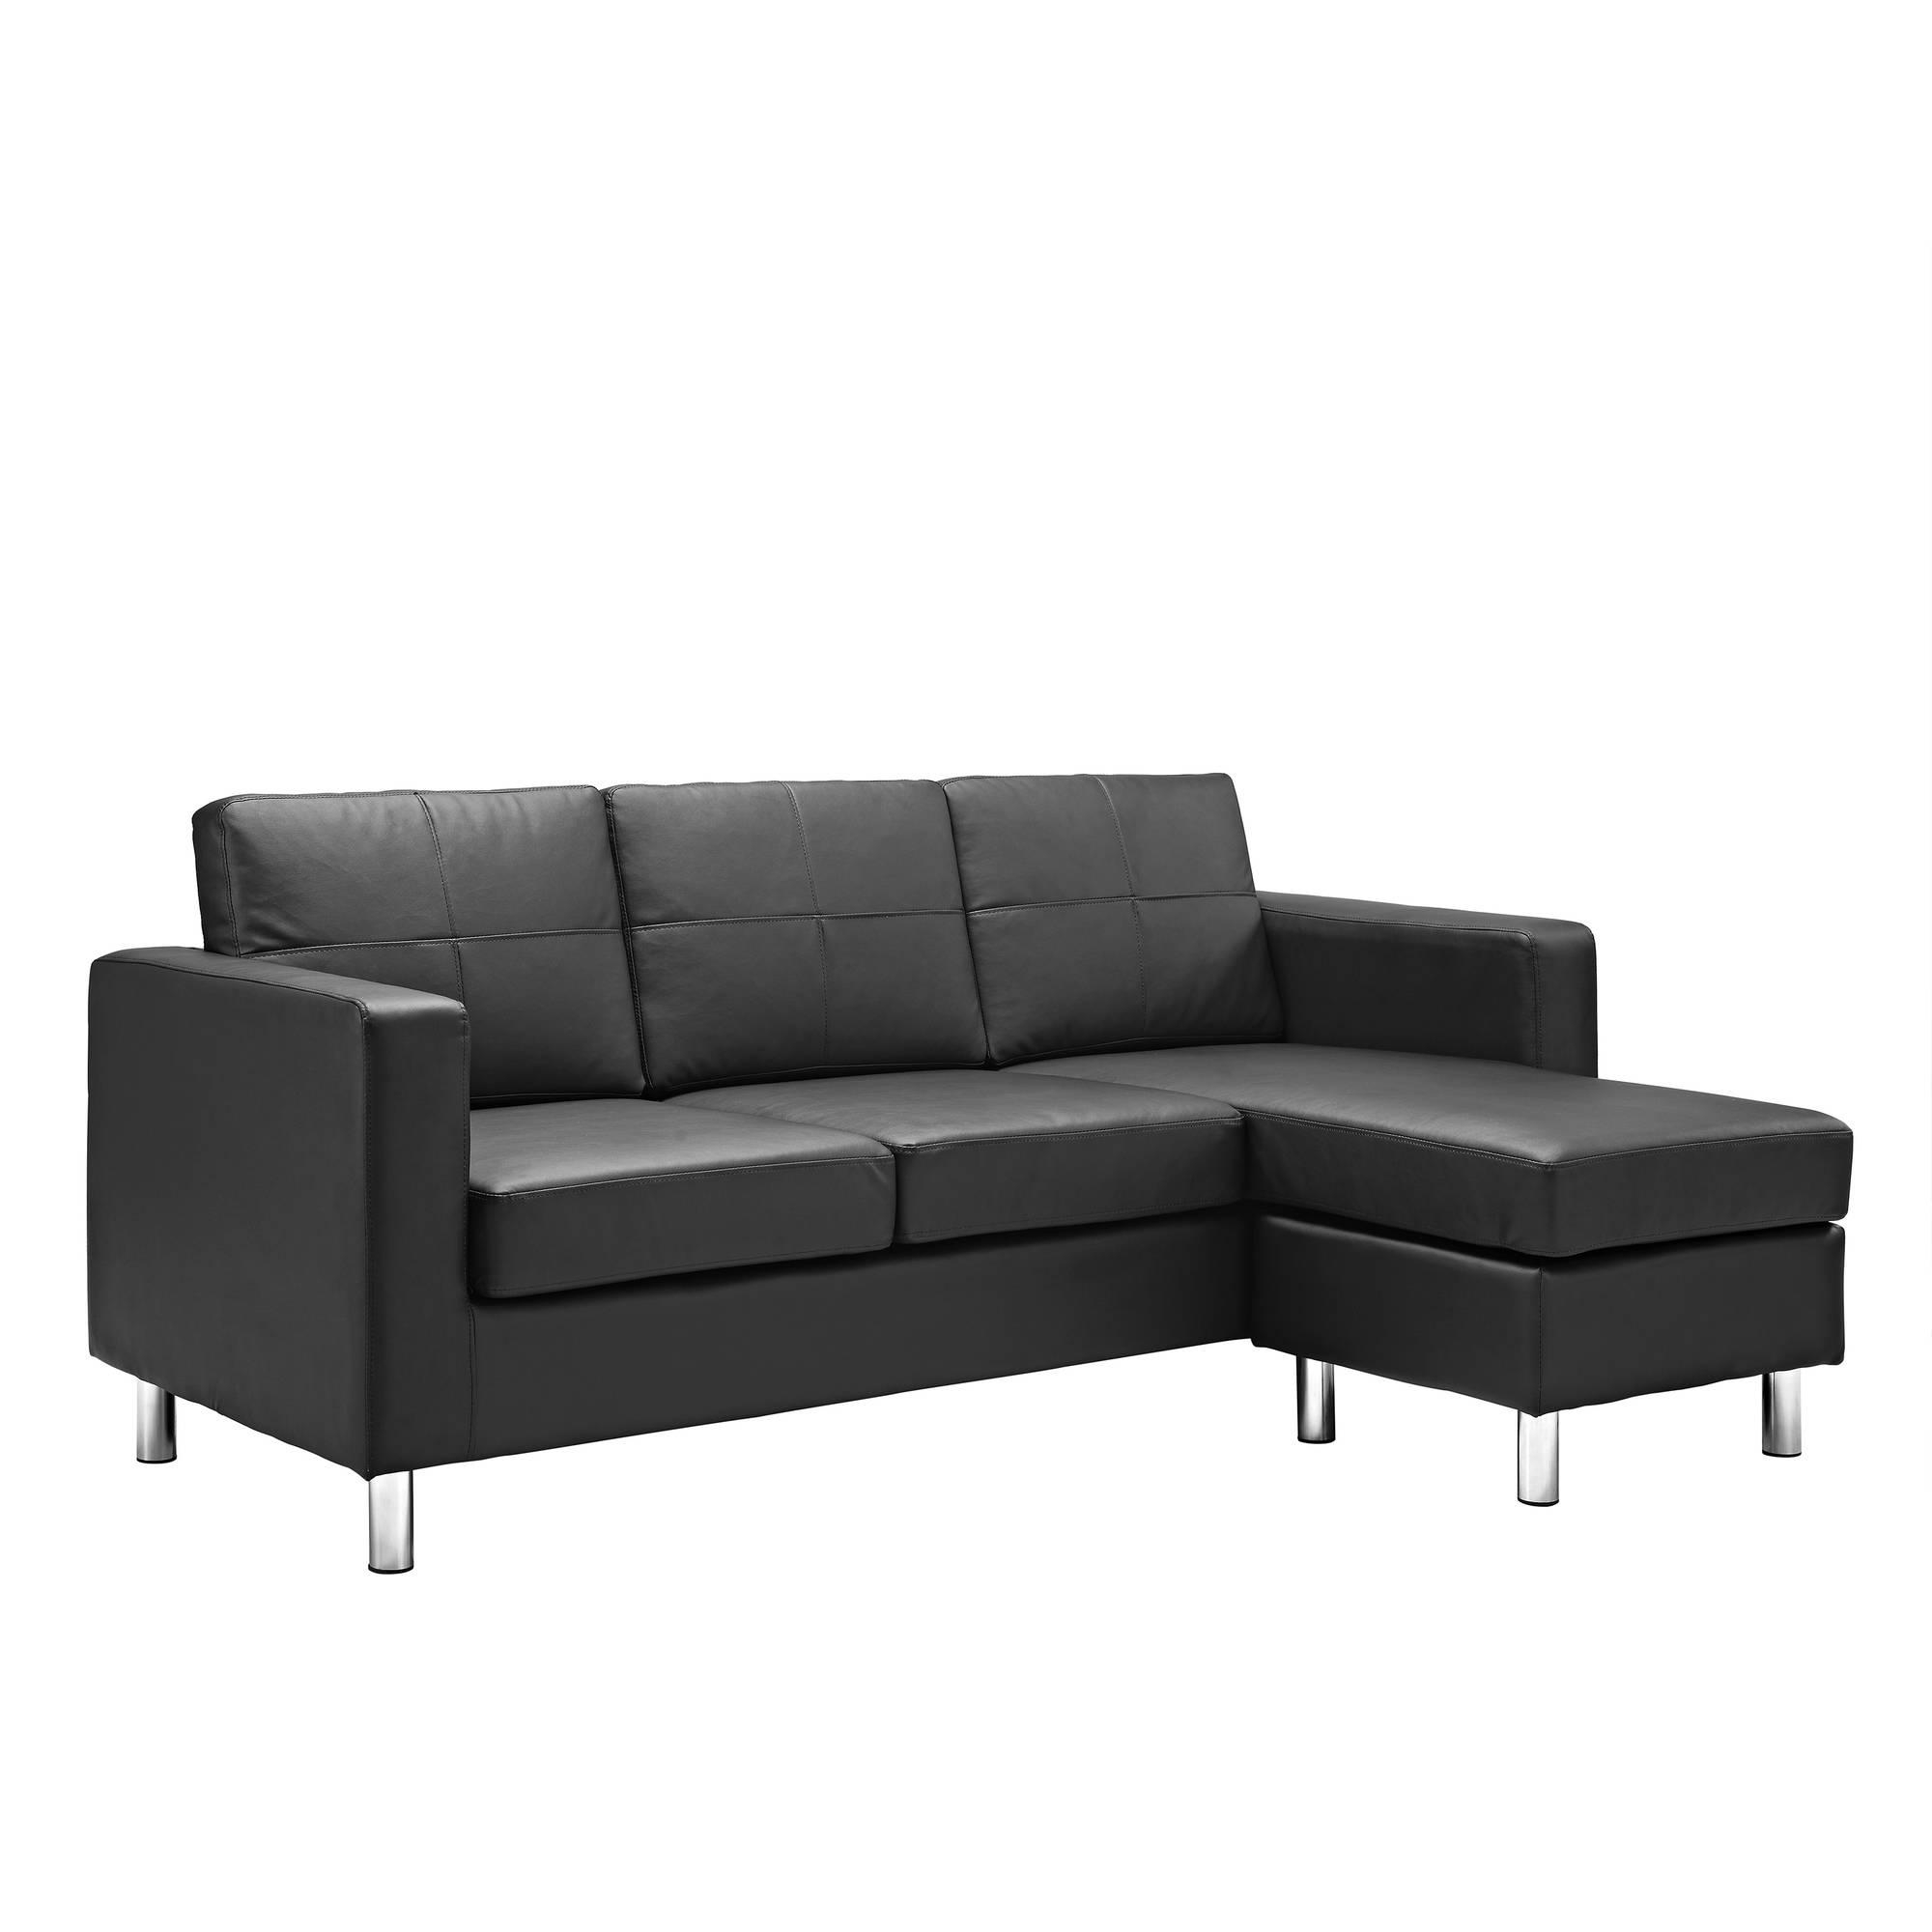 Dorel Living Small Spaces Configurable Sectional Sofa, Multiple Within Mini Sectional Sofas (Image 7 of 20)